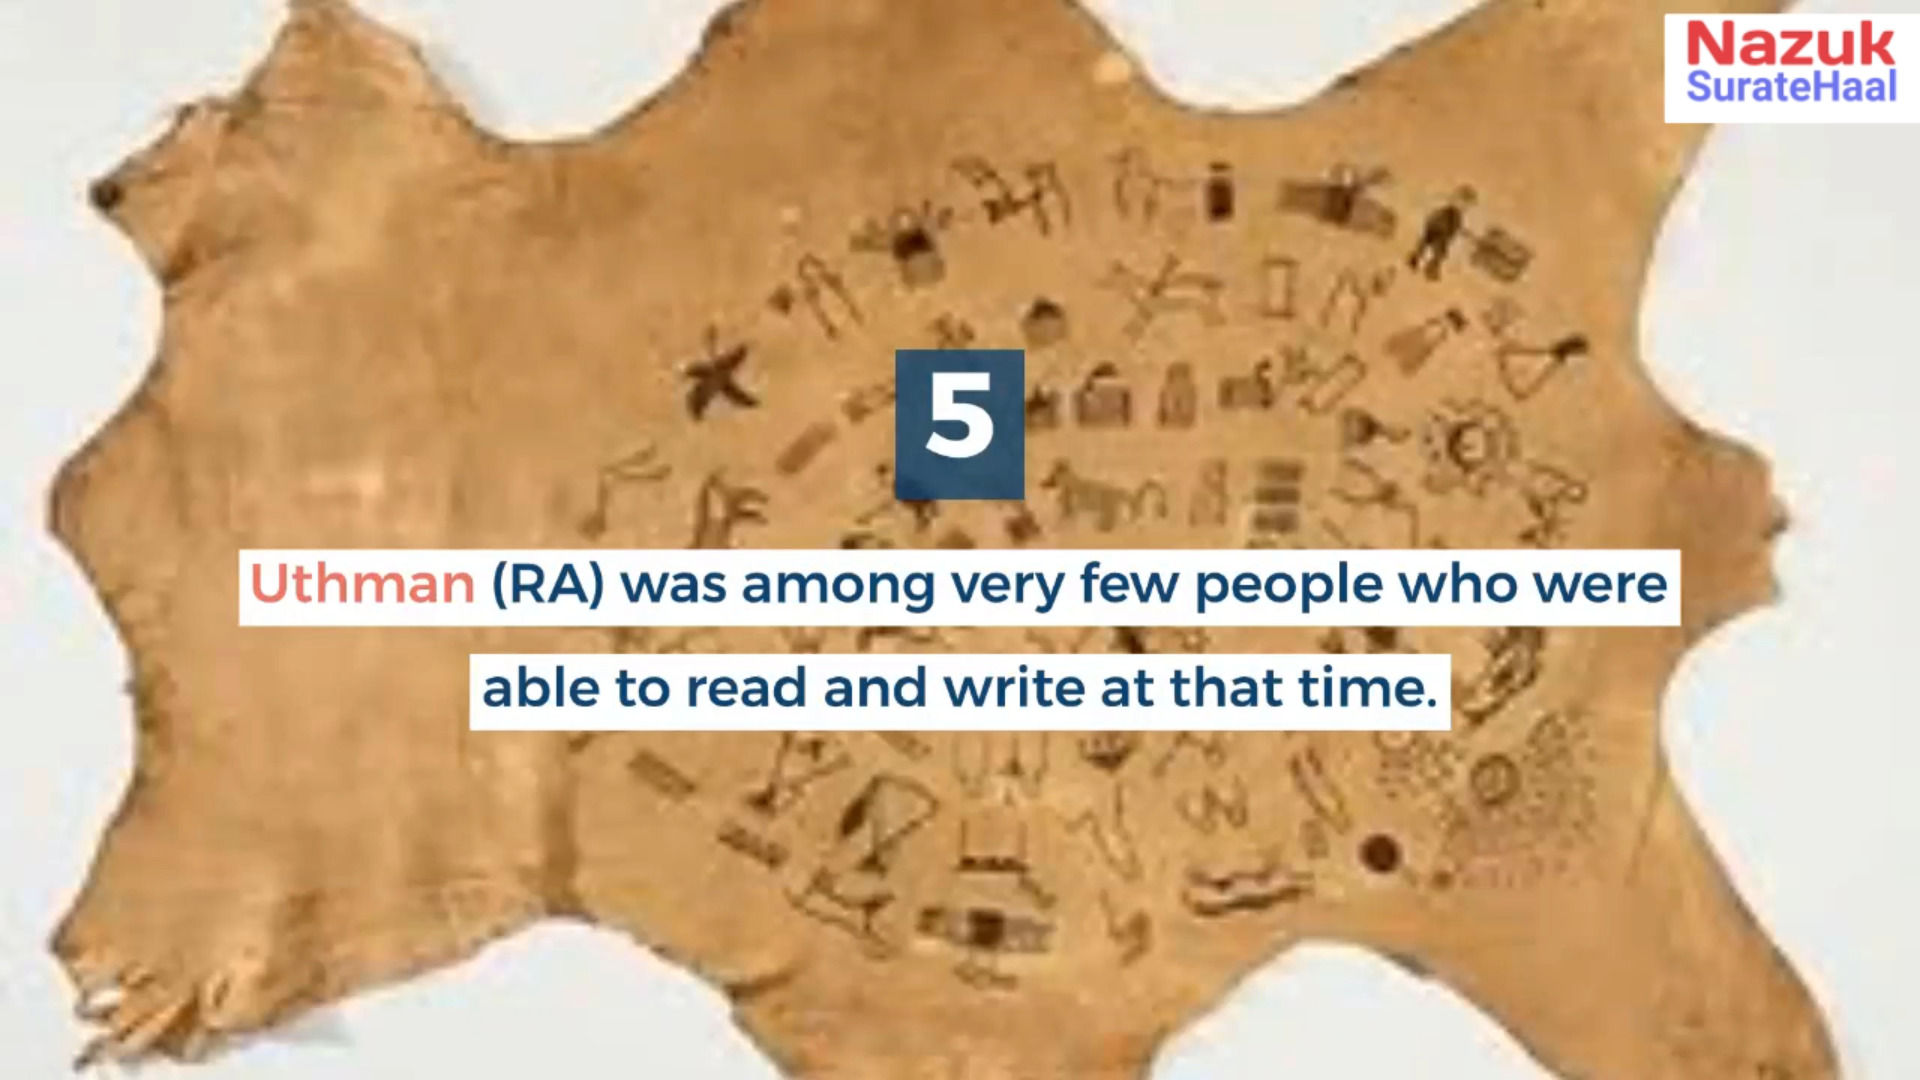 Uthman (RA) was among very few people who were able to read and write at that time.